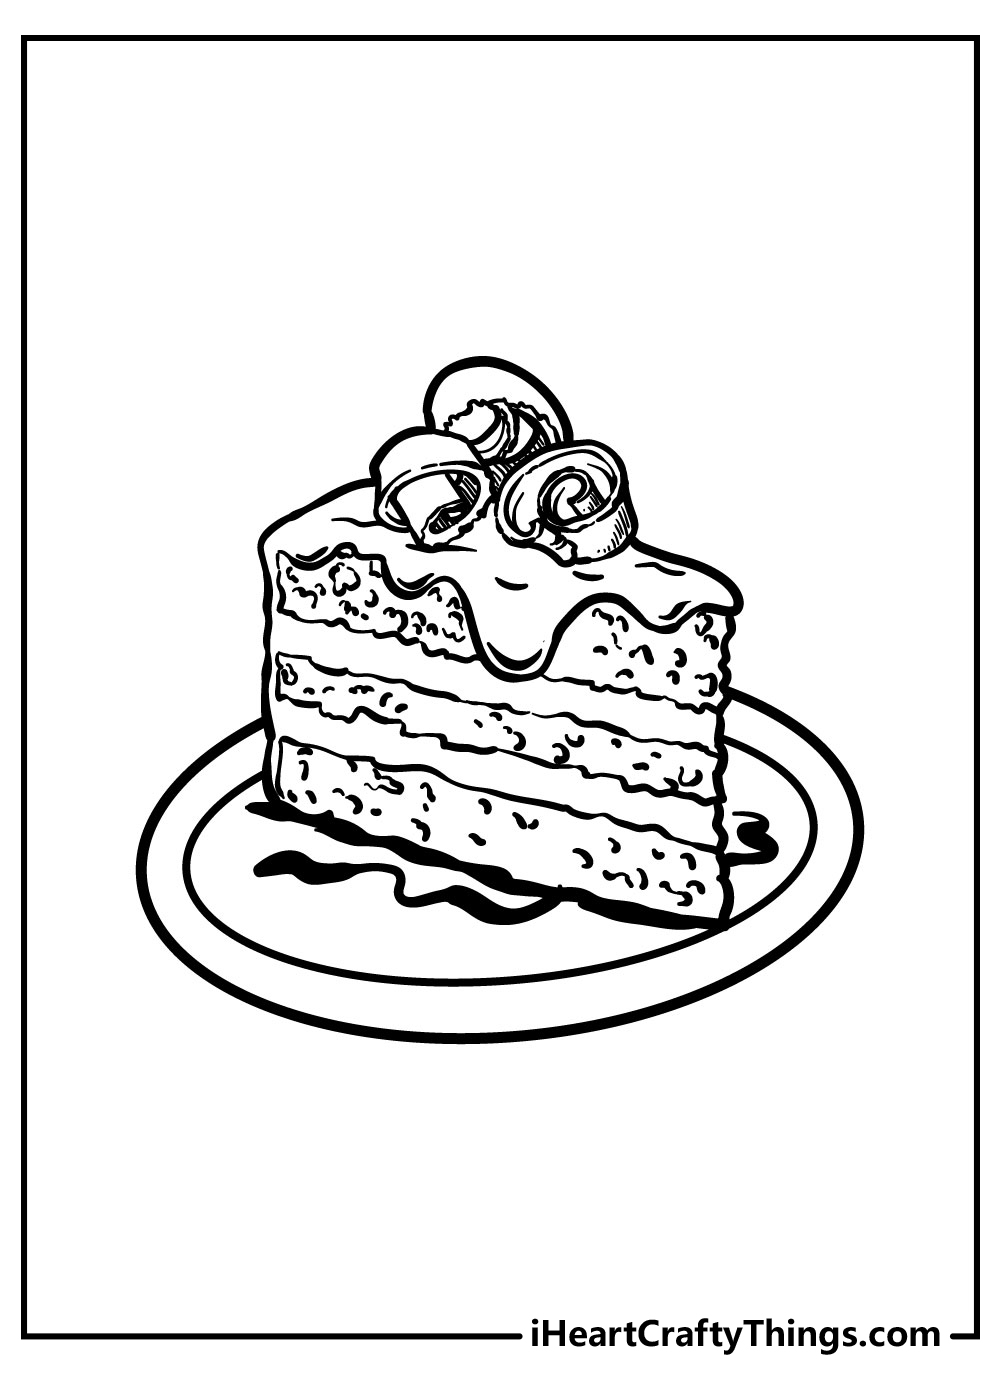 one slice of cake coloring pages free pdf